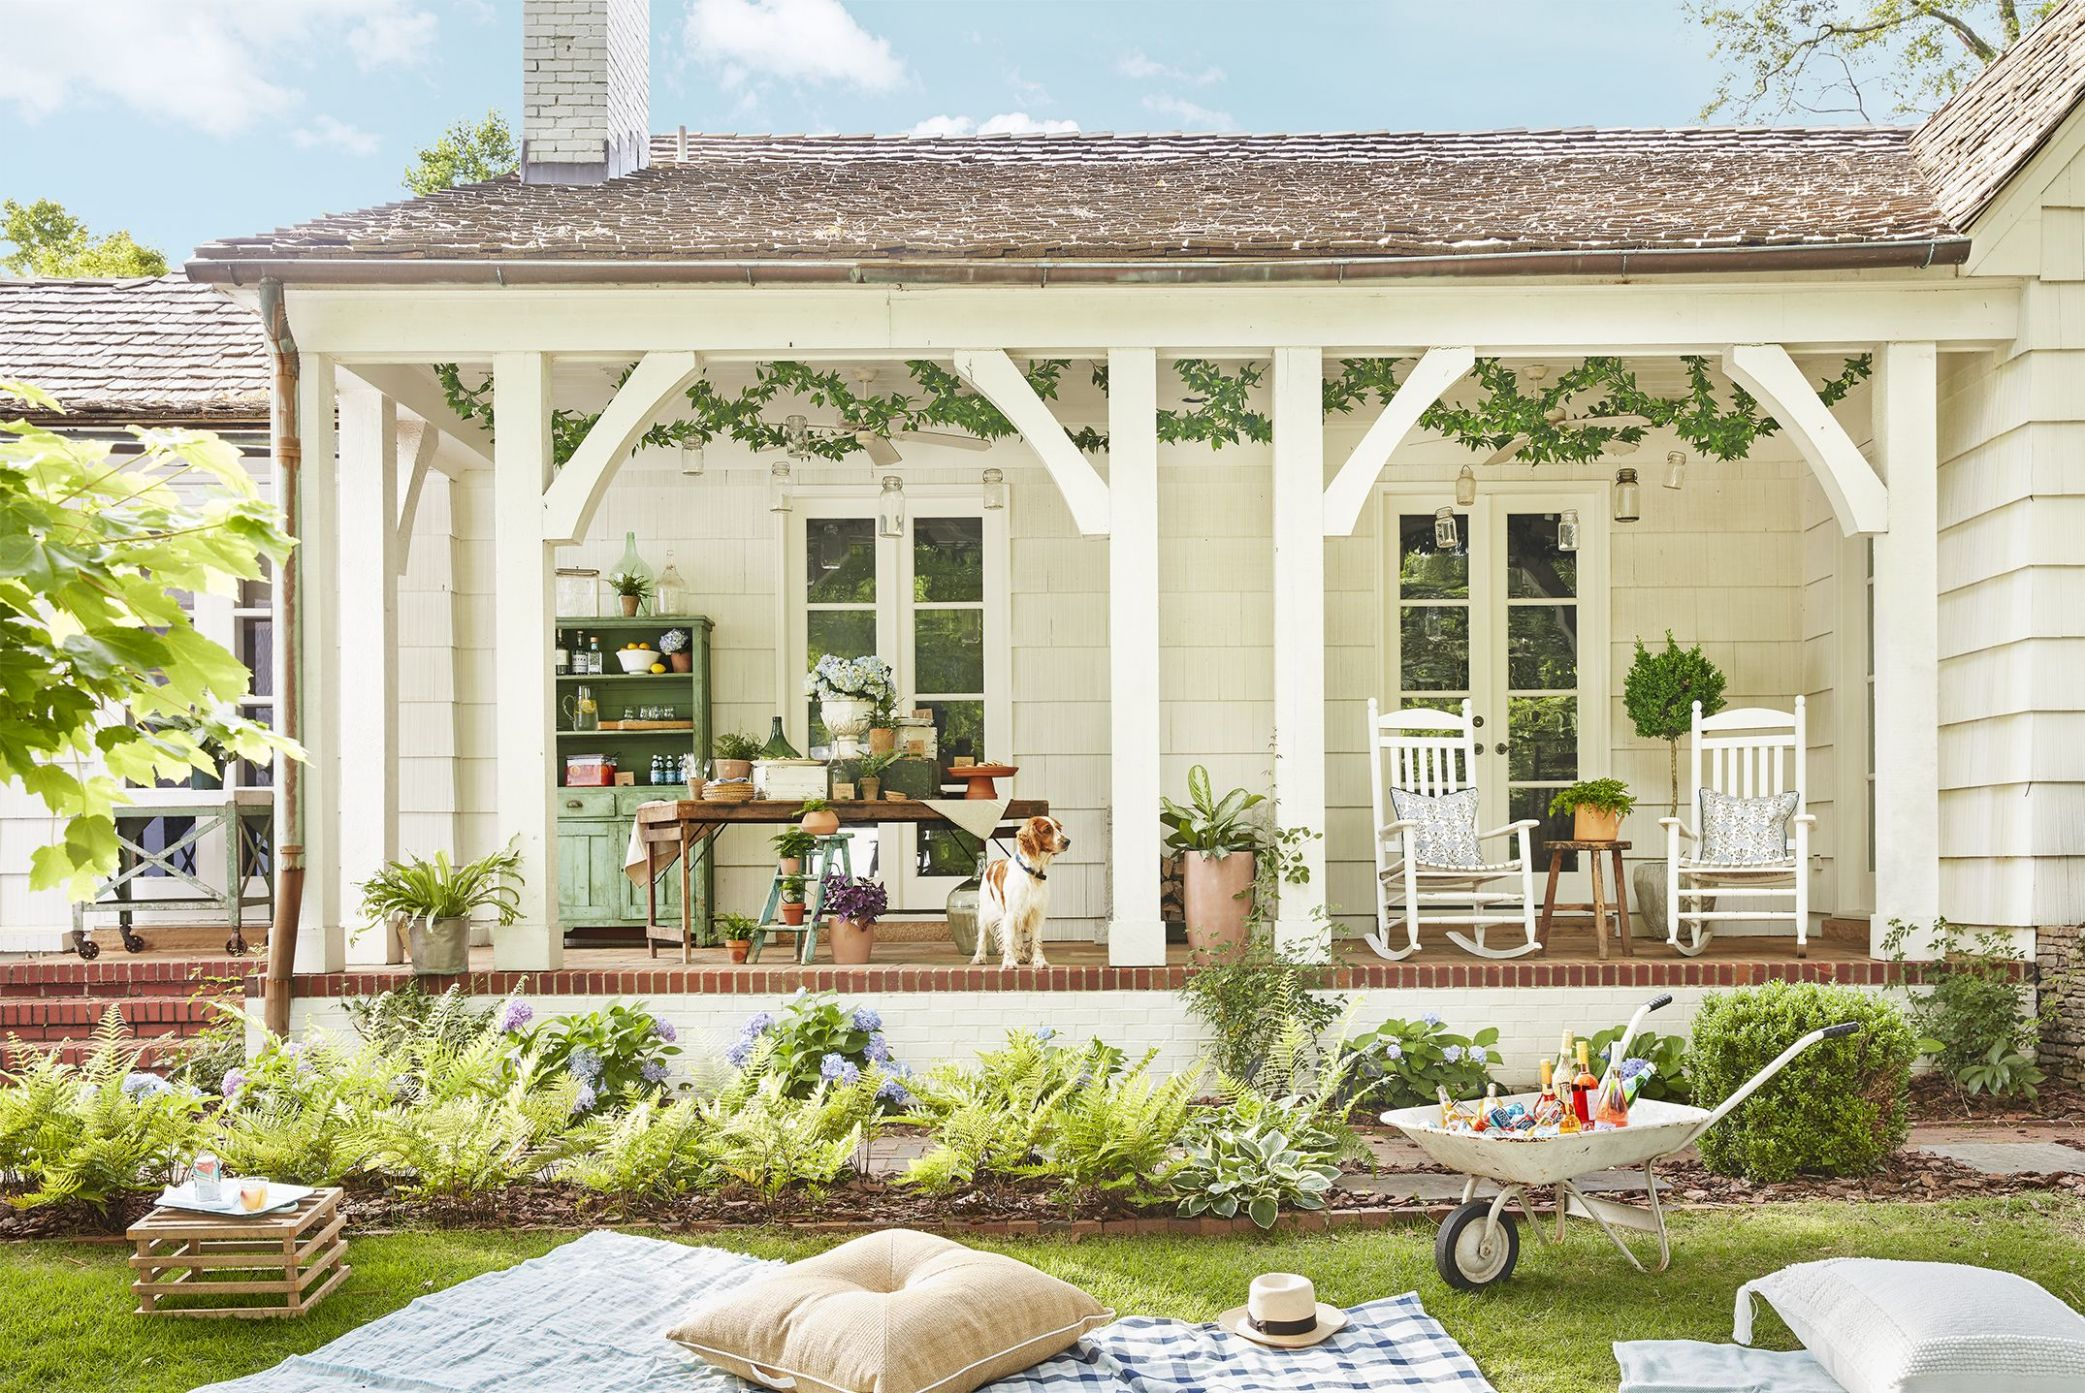 10 Best Front Porch Ideas - Ideas for Front Porch and Patio Decorating